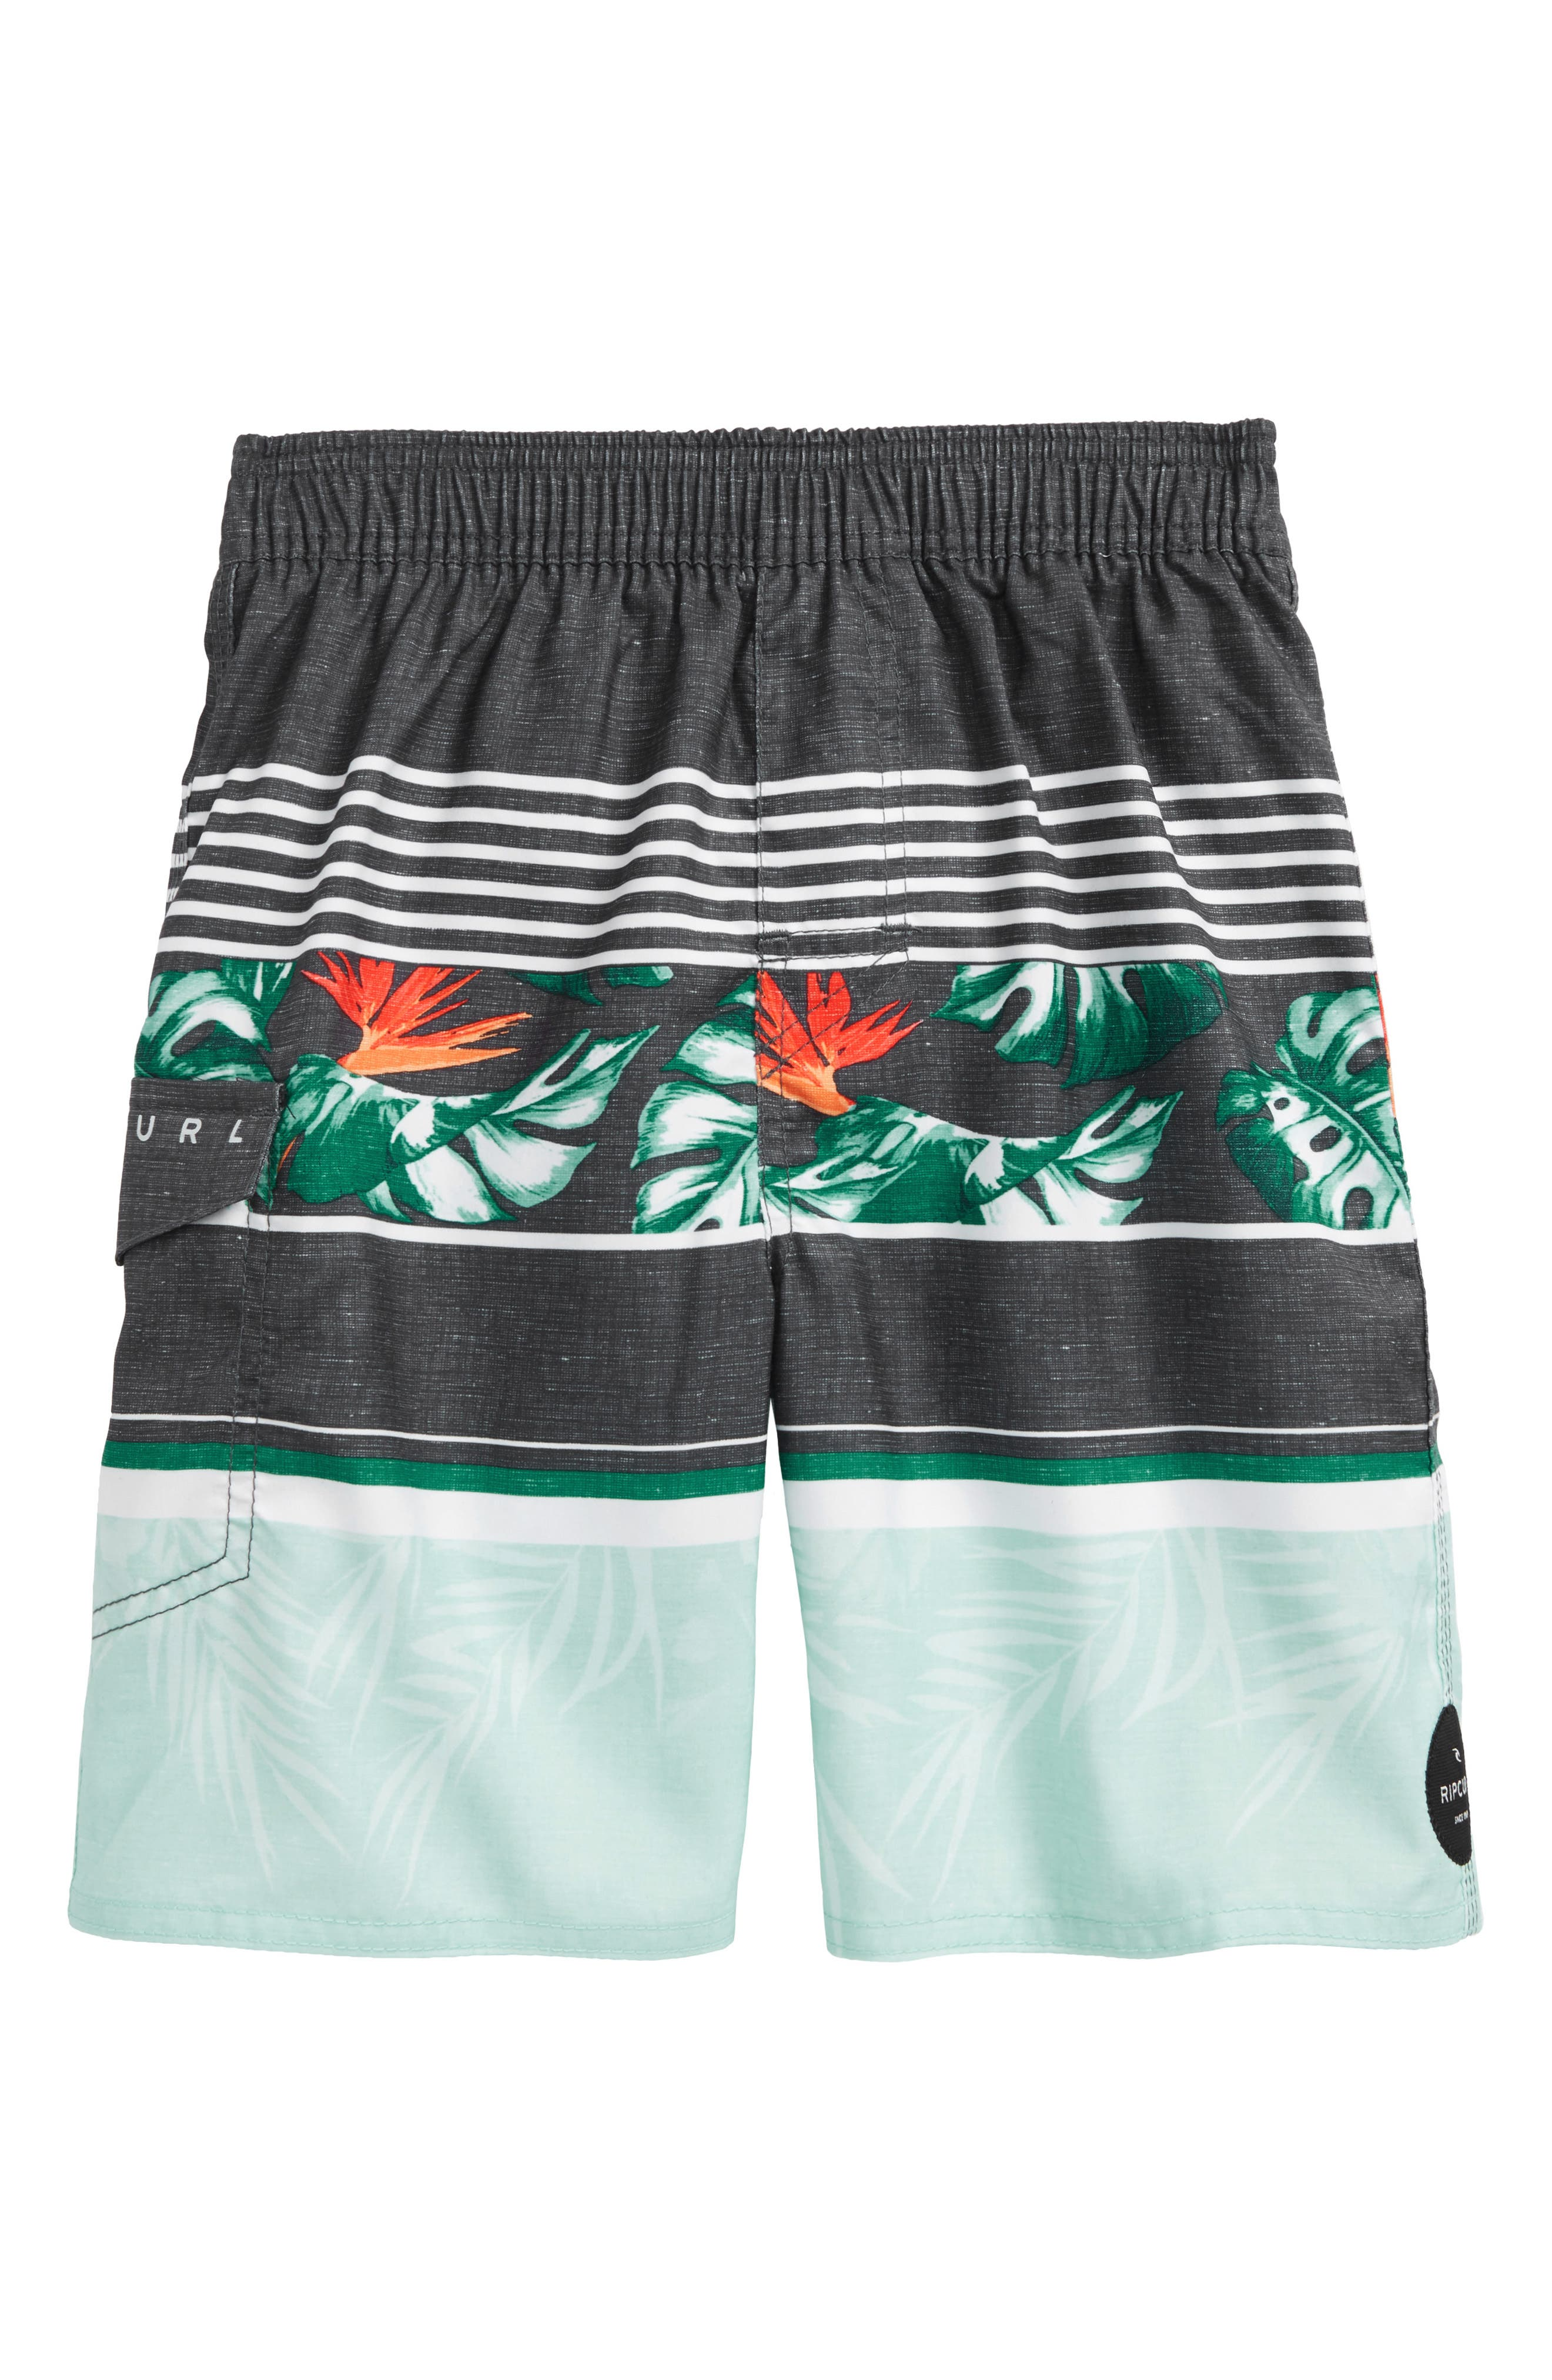 Sessions Volley Shorts,                         Main,                         color, 443